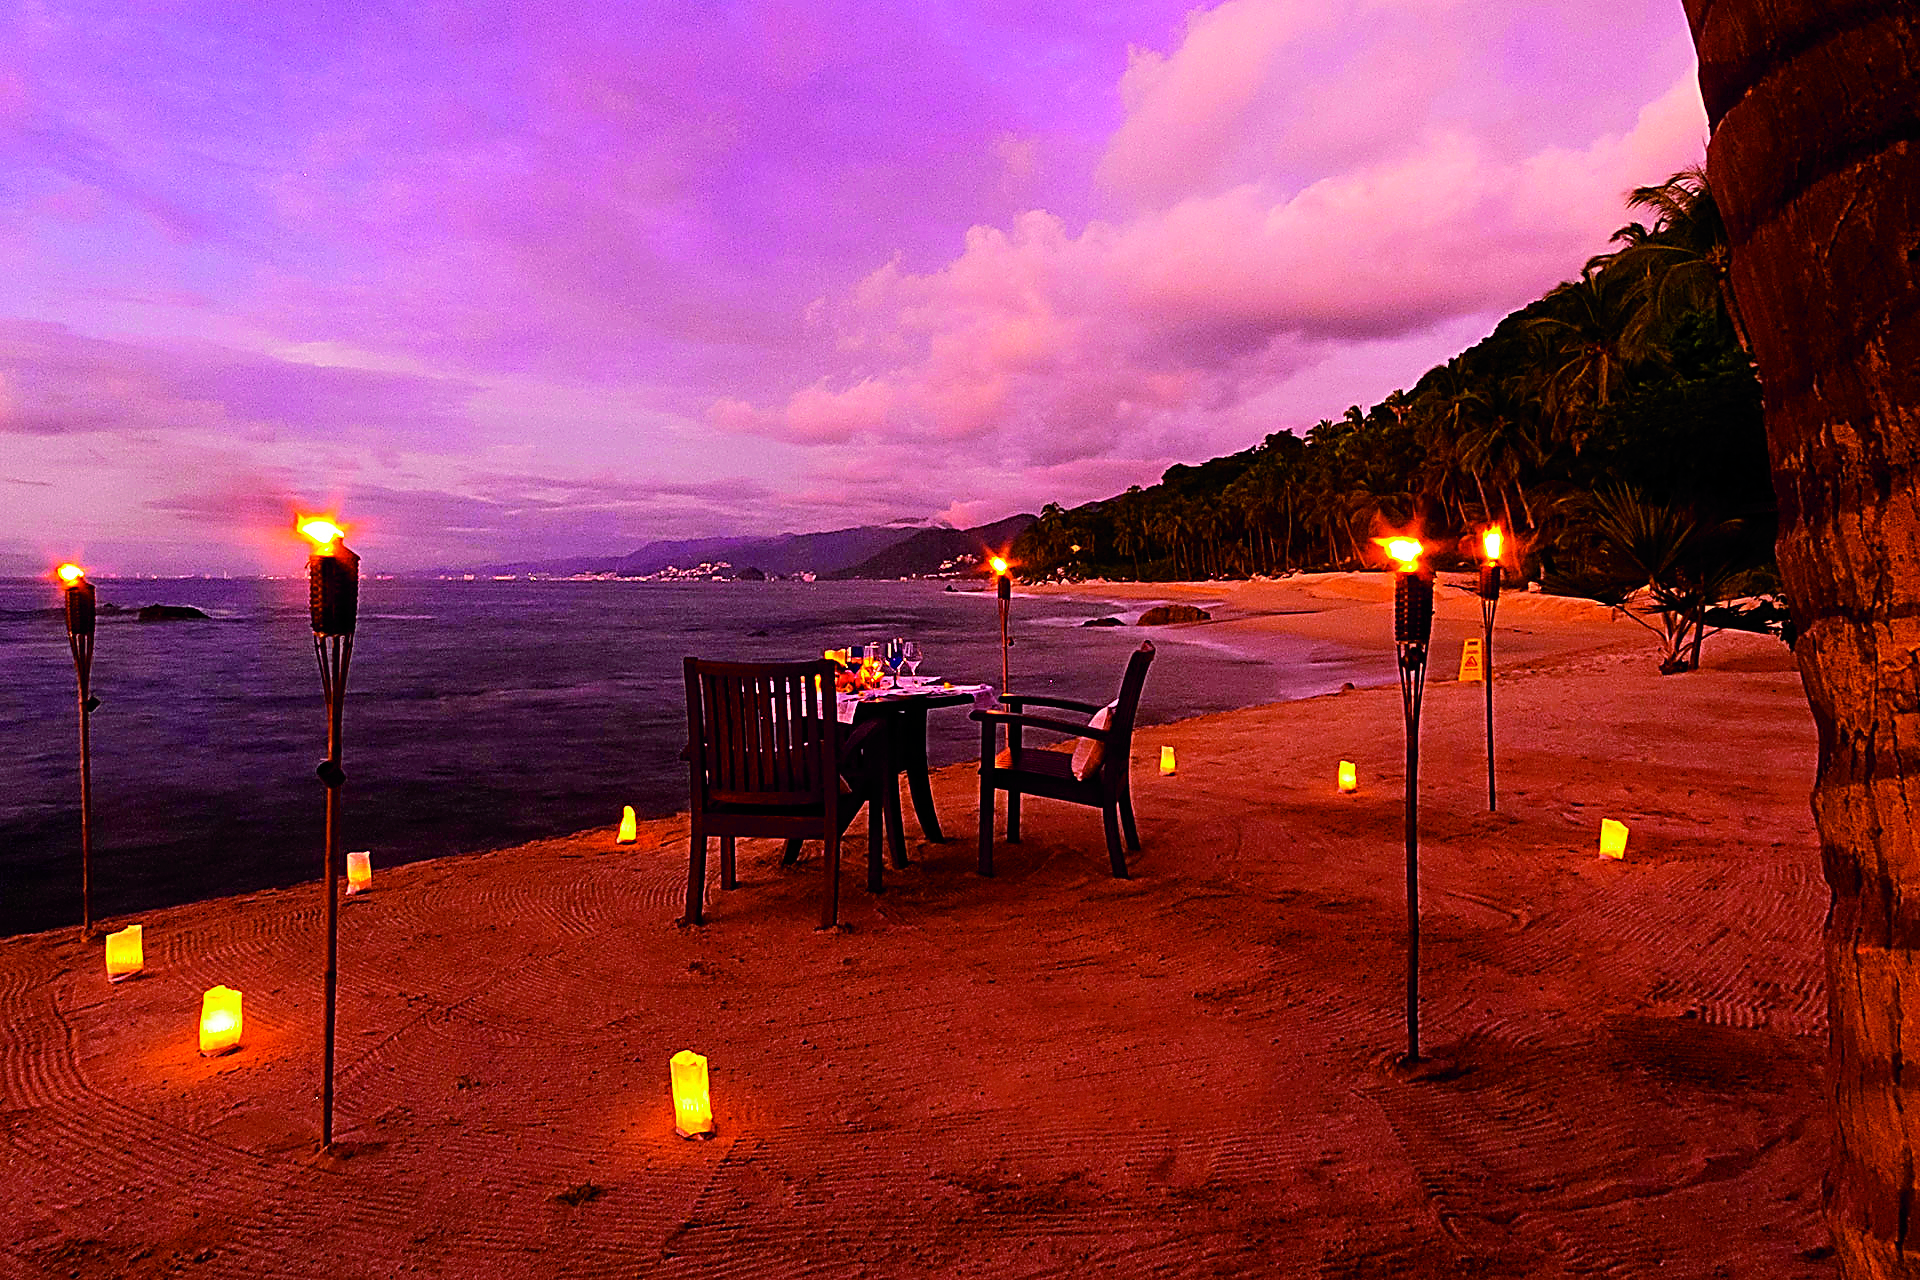 Be my valentine: 4 romantic activities in vallarta nayarit